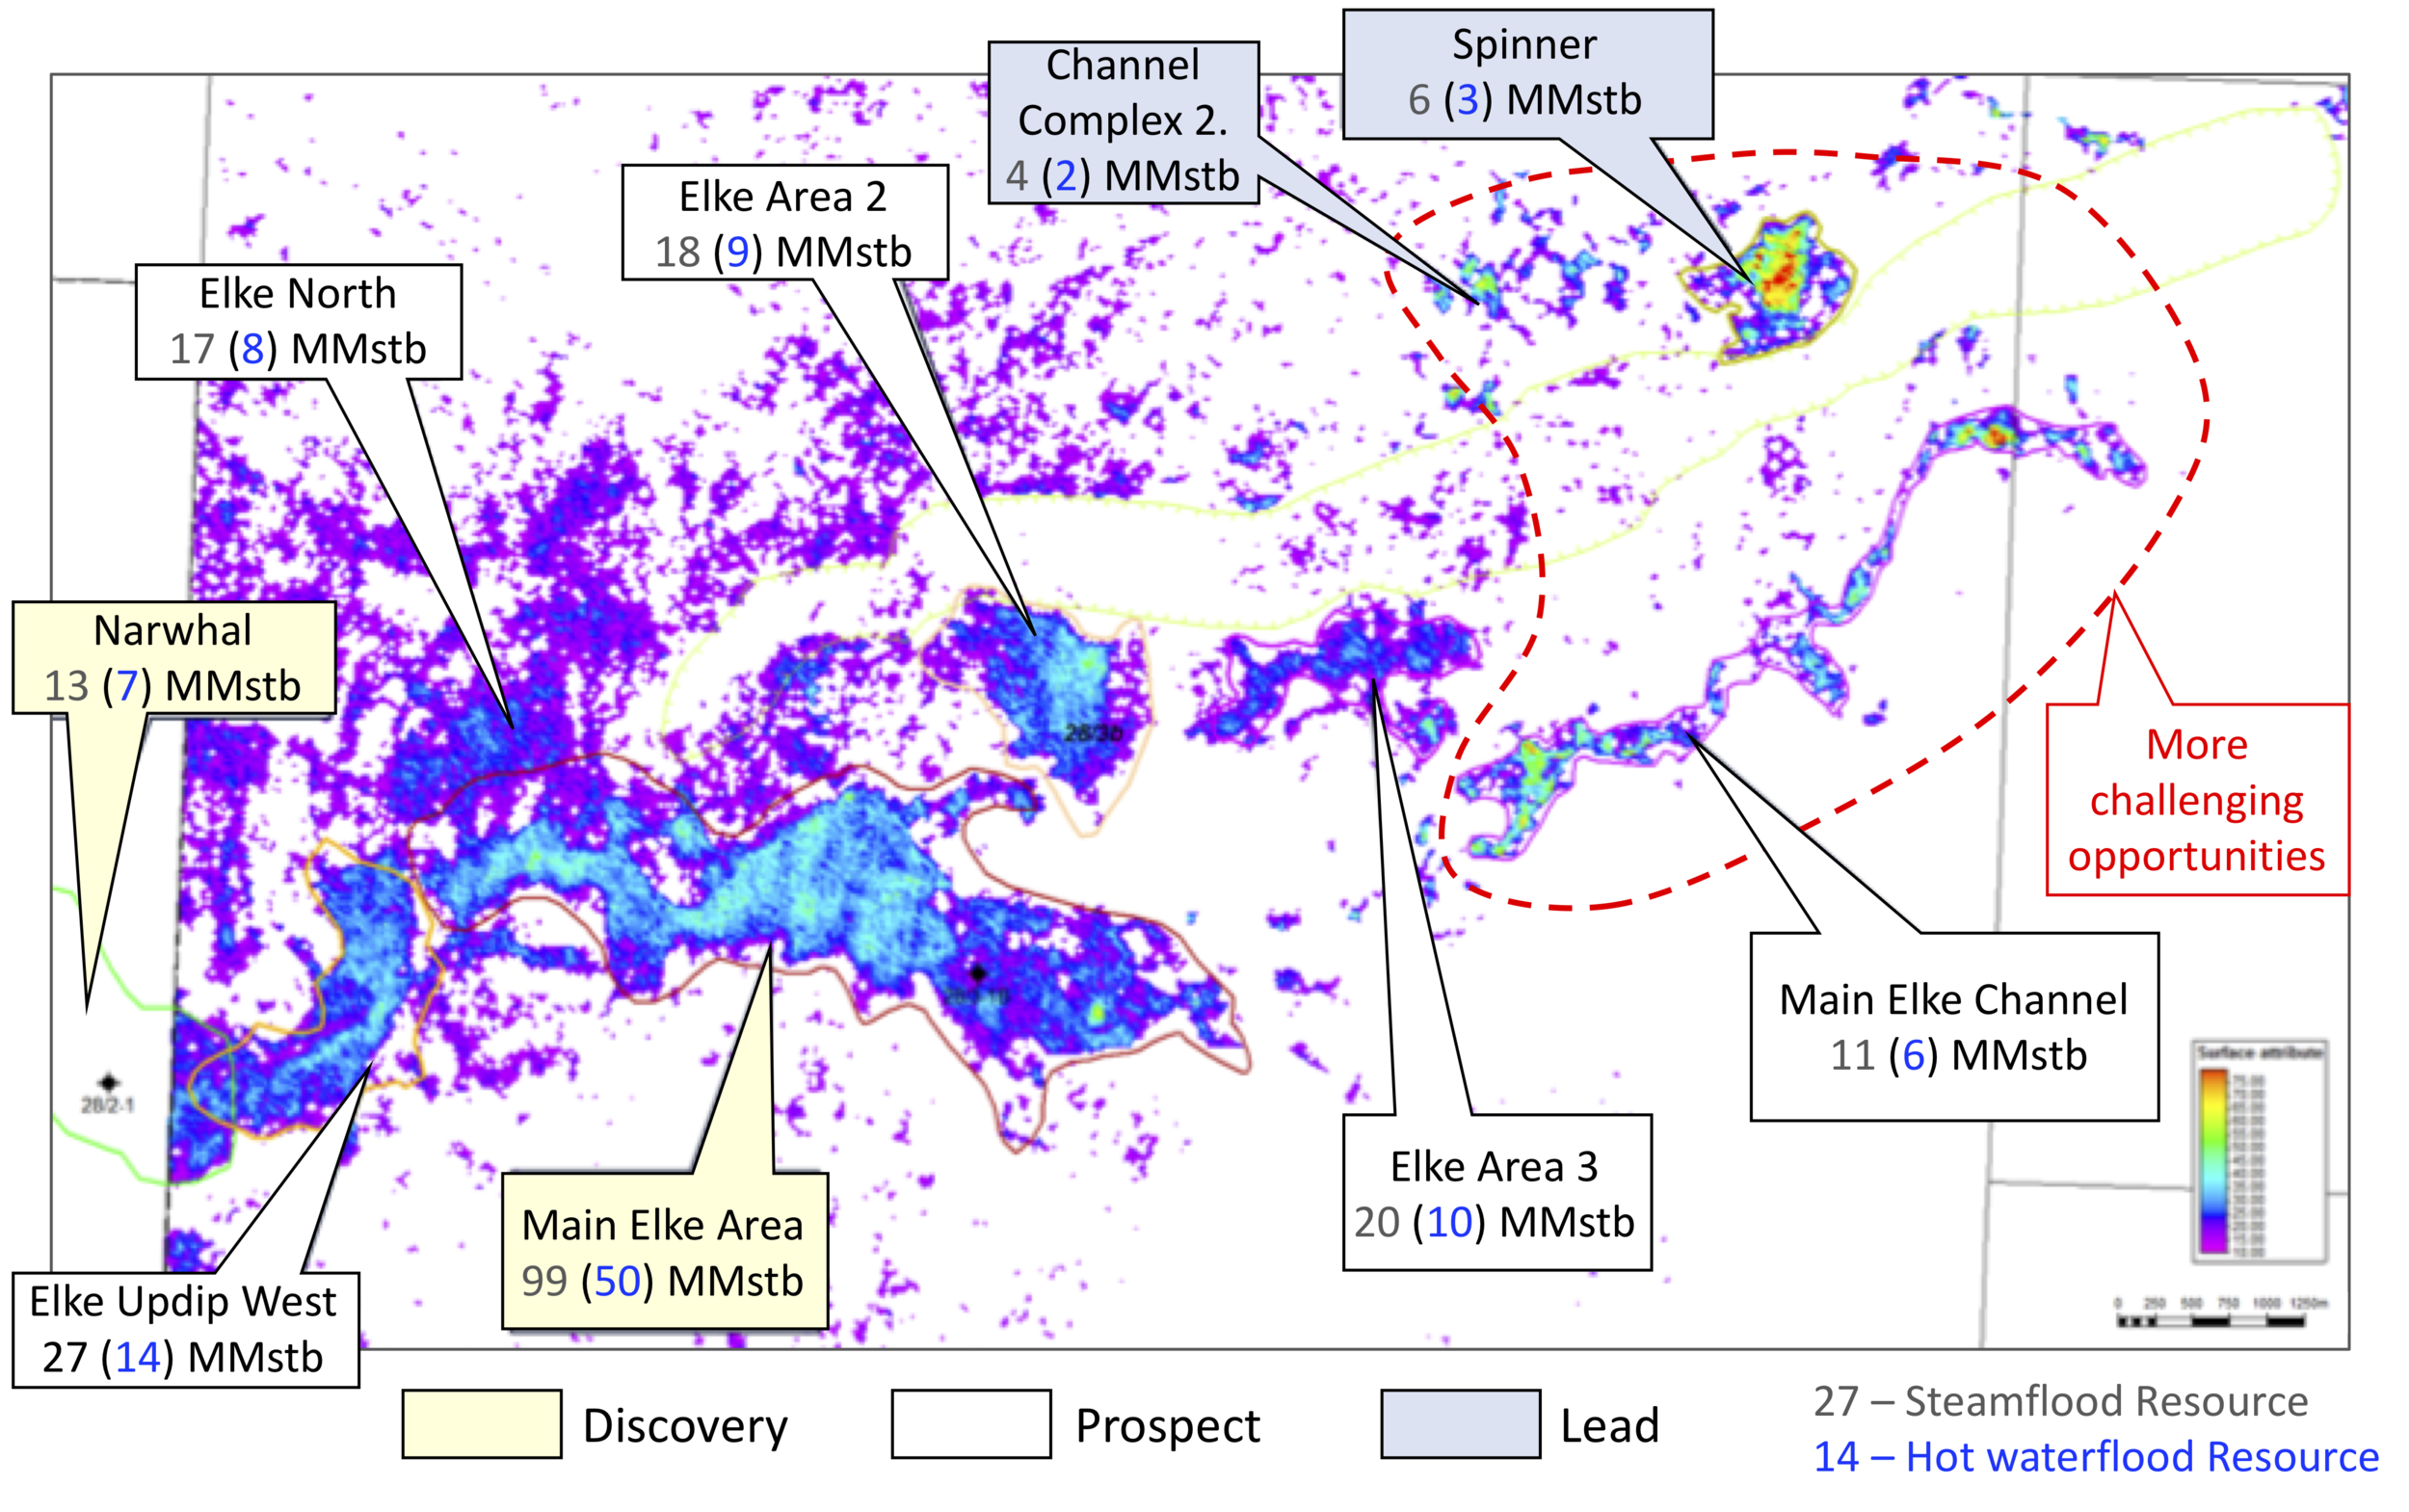 Steamflood and waterflood resources for Elke, Narwhal and Tay sand prospects overlaid on an amplitude map based on TGS seismic